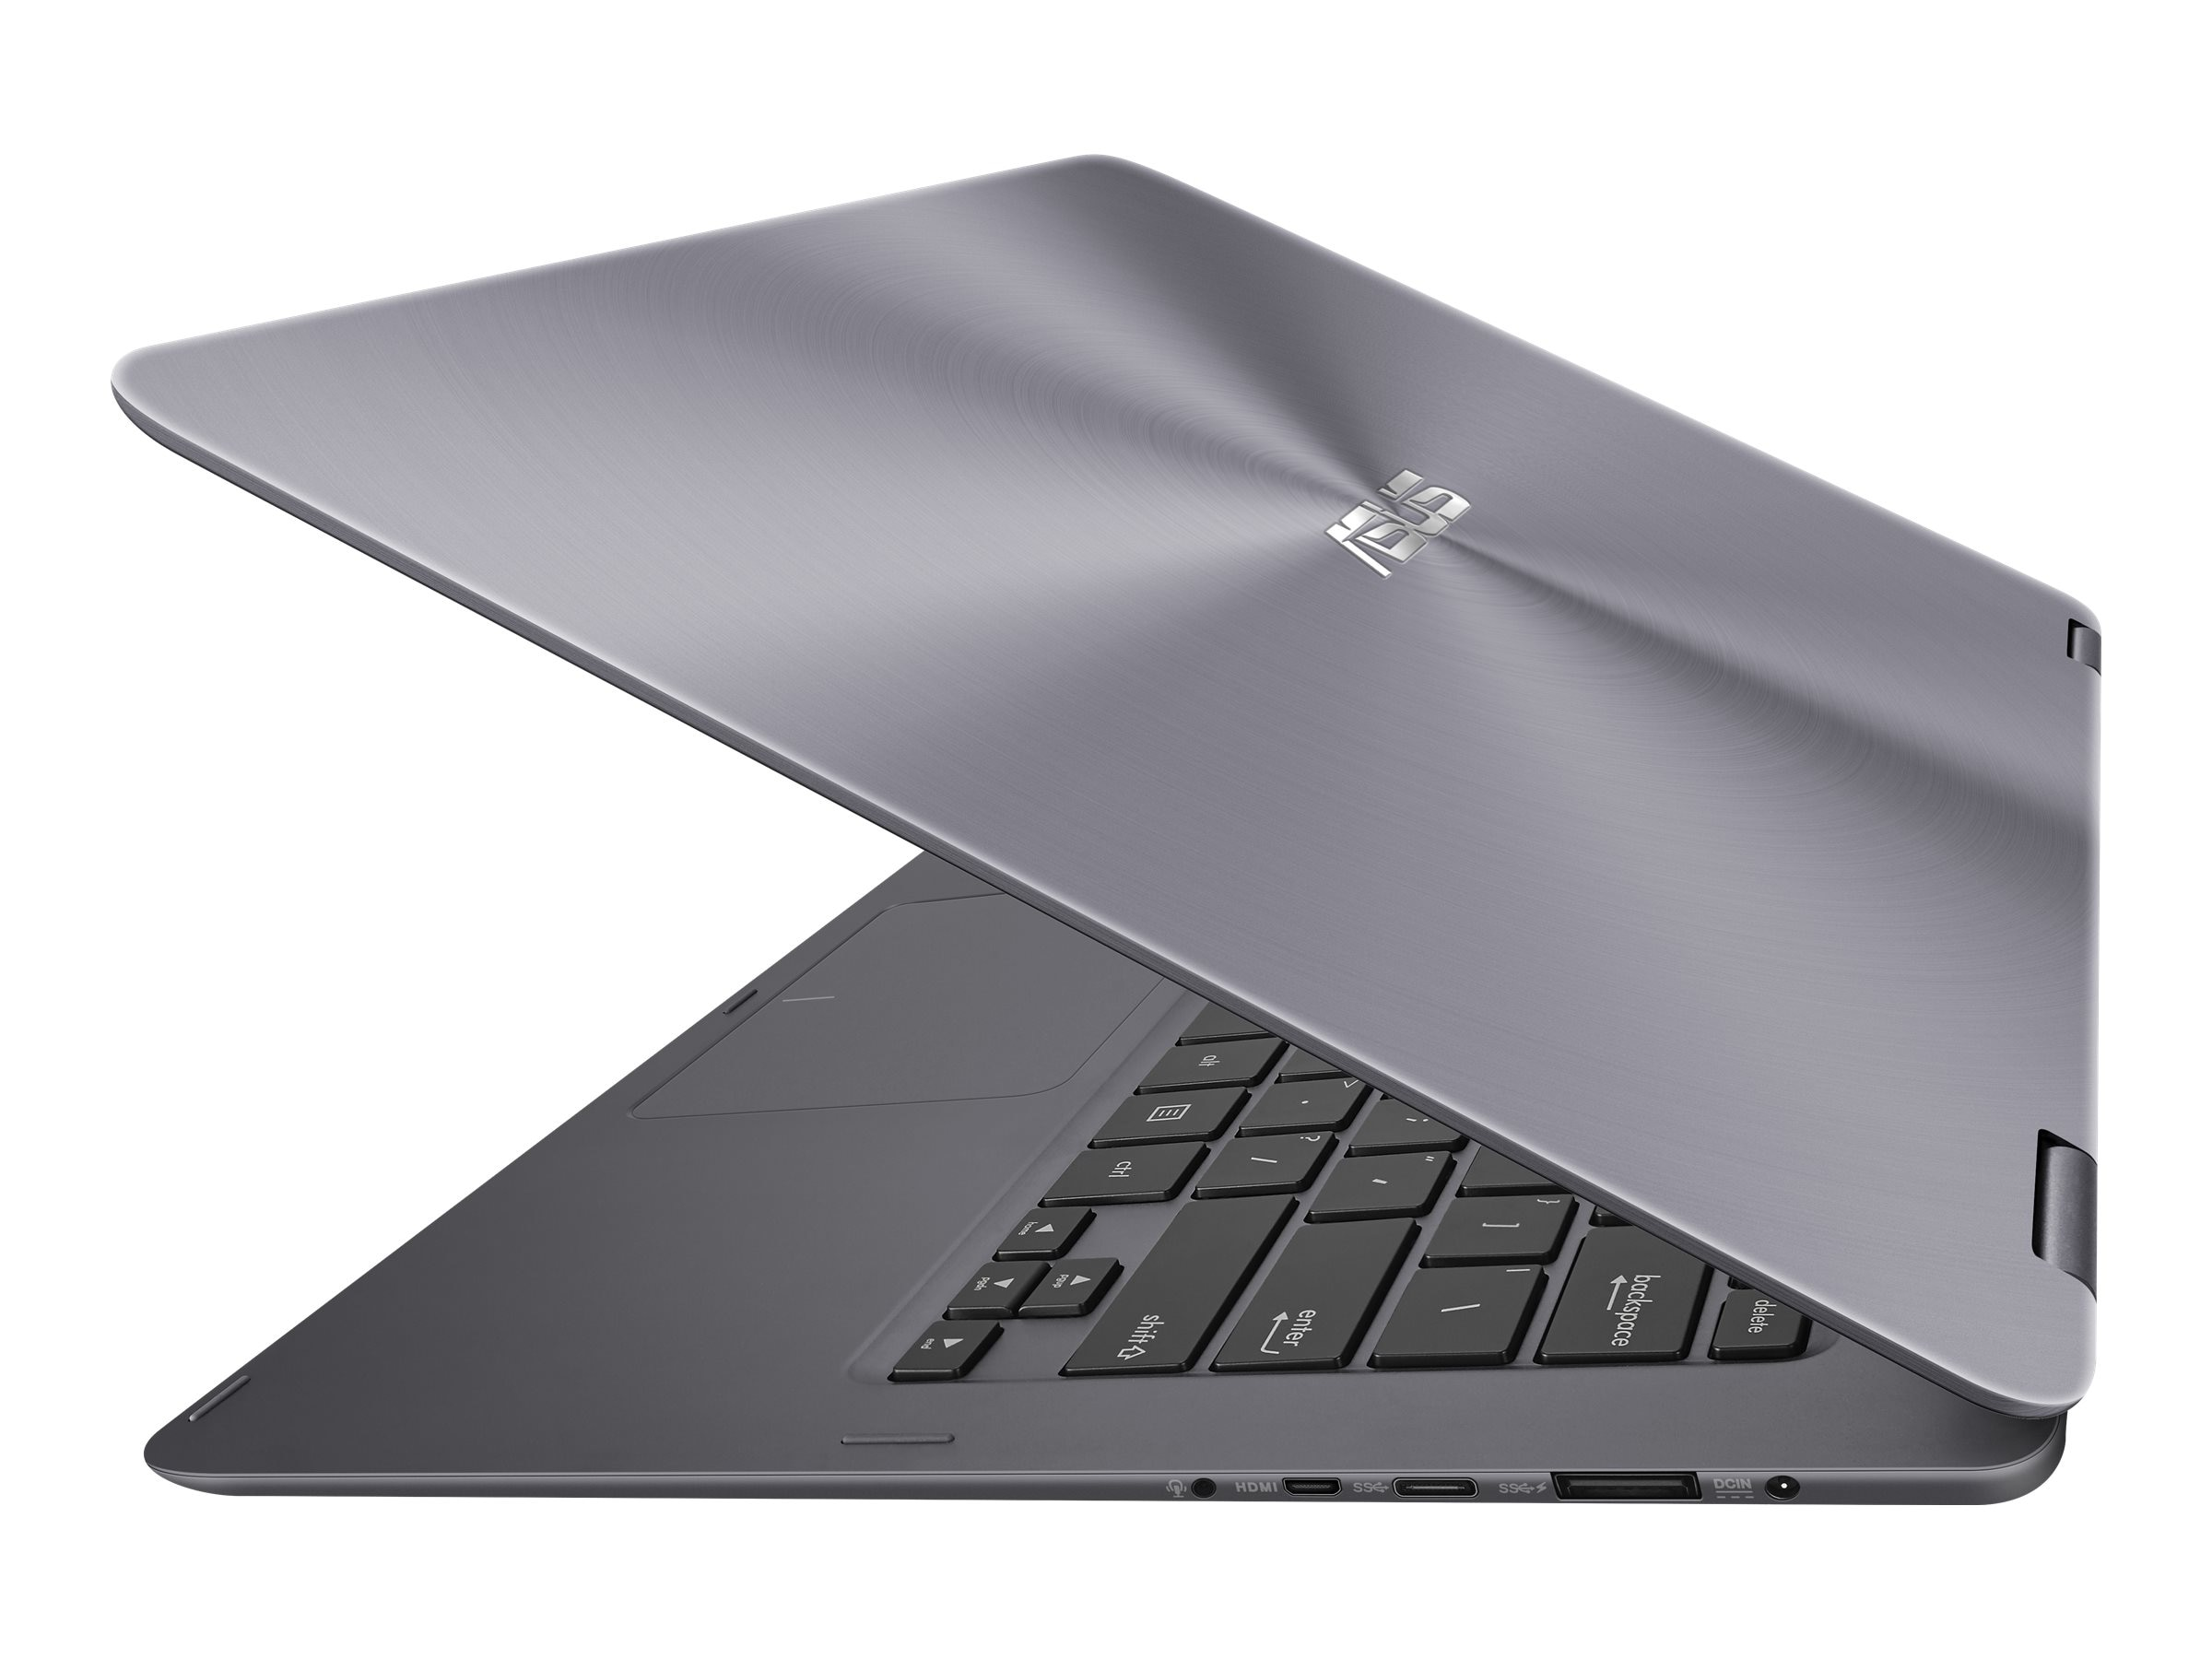 Asus Notebook PC Core m3-6Y30 8GB 512GB 13.3 W10, 90NB0BA2-M02430